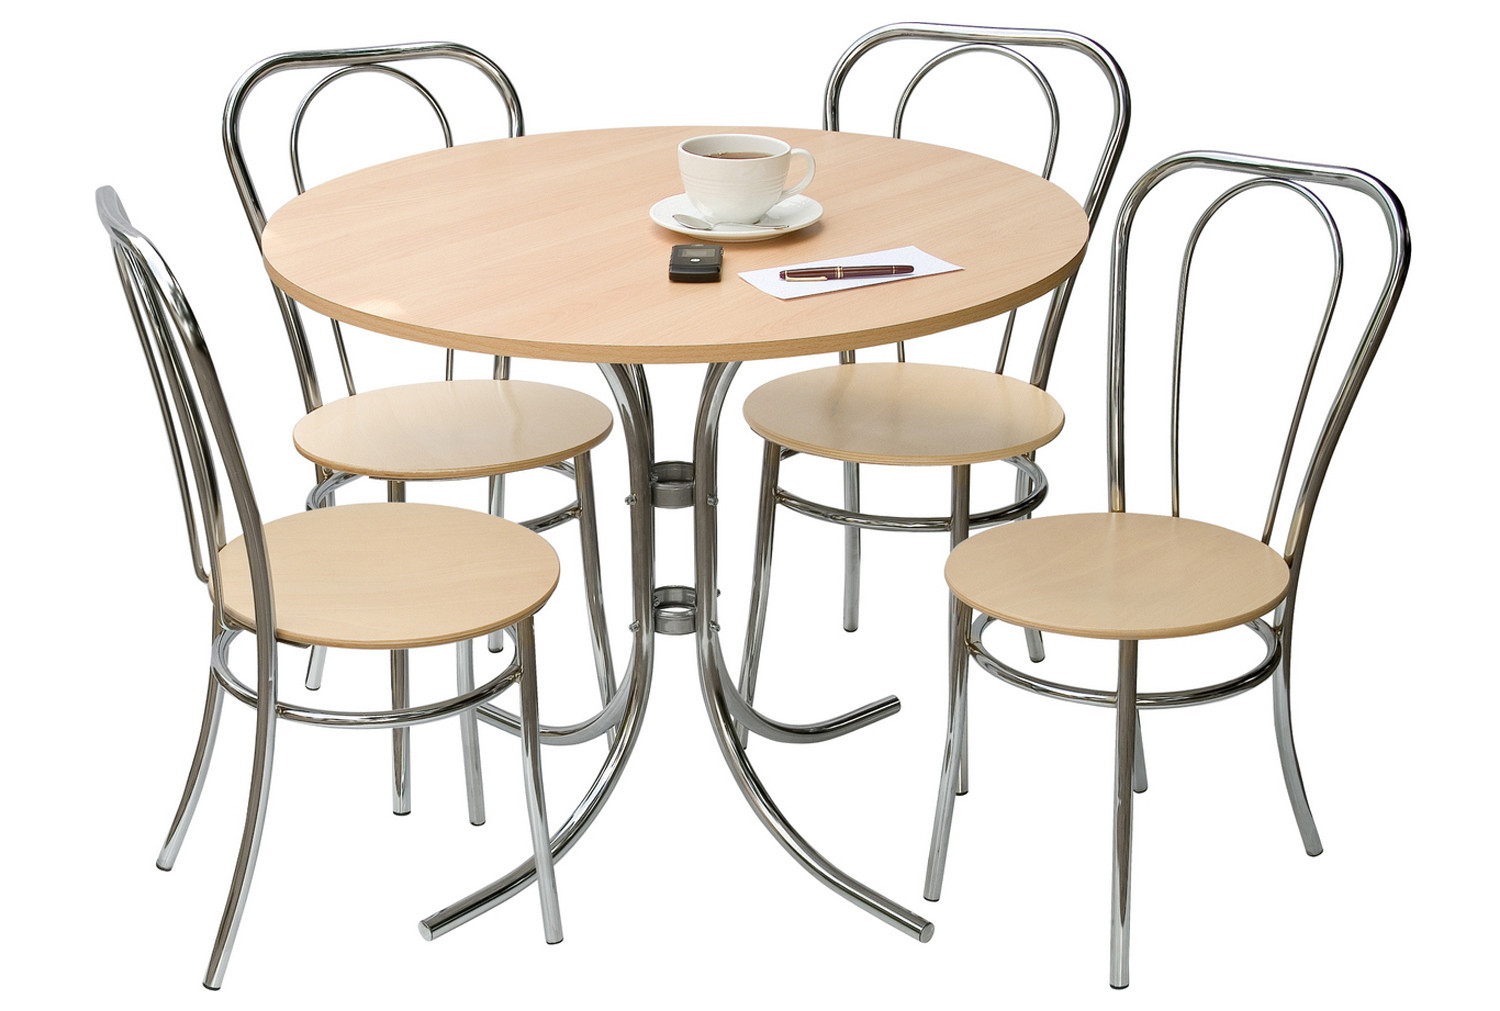 Heavy duty bistro set